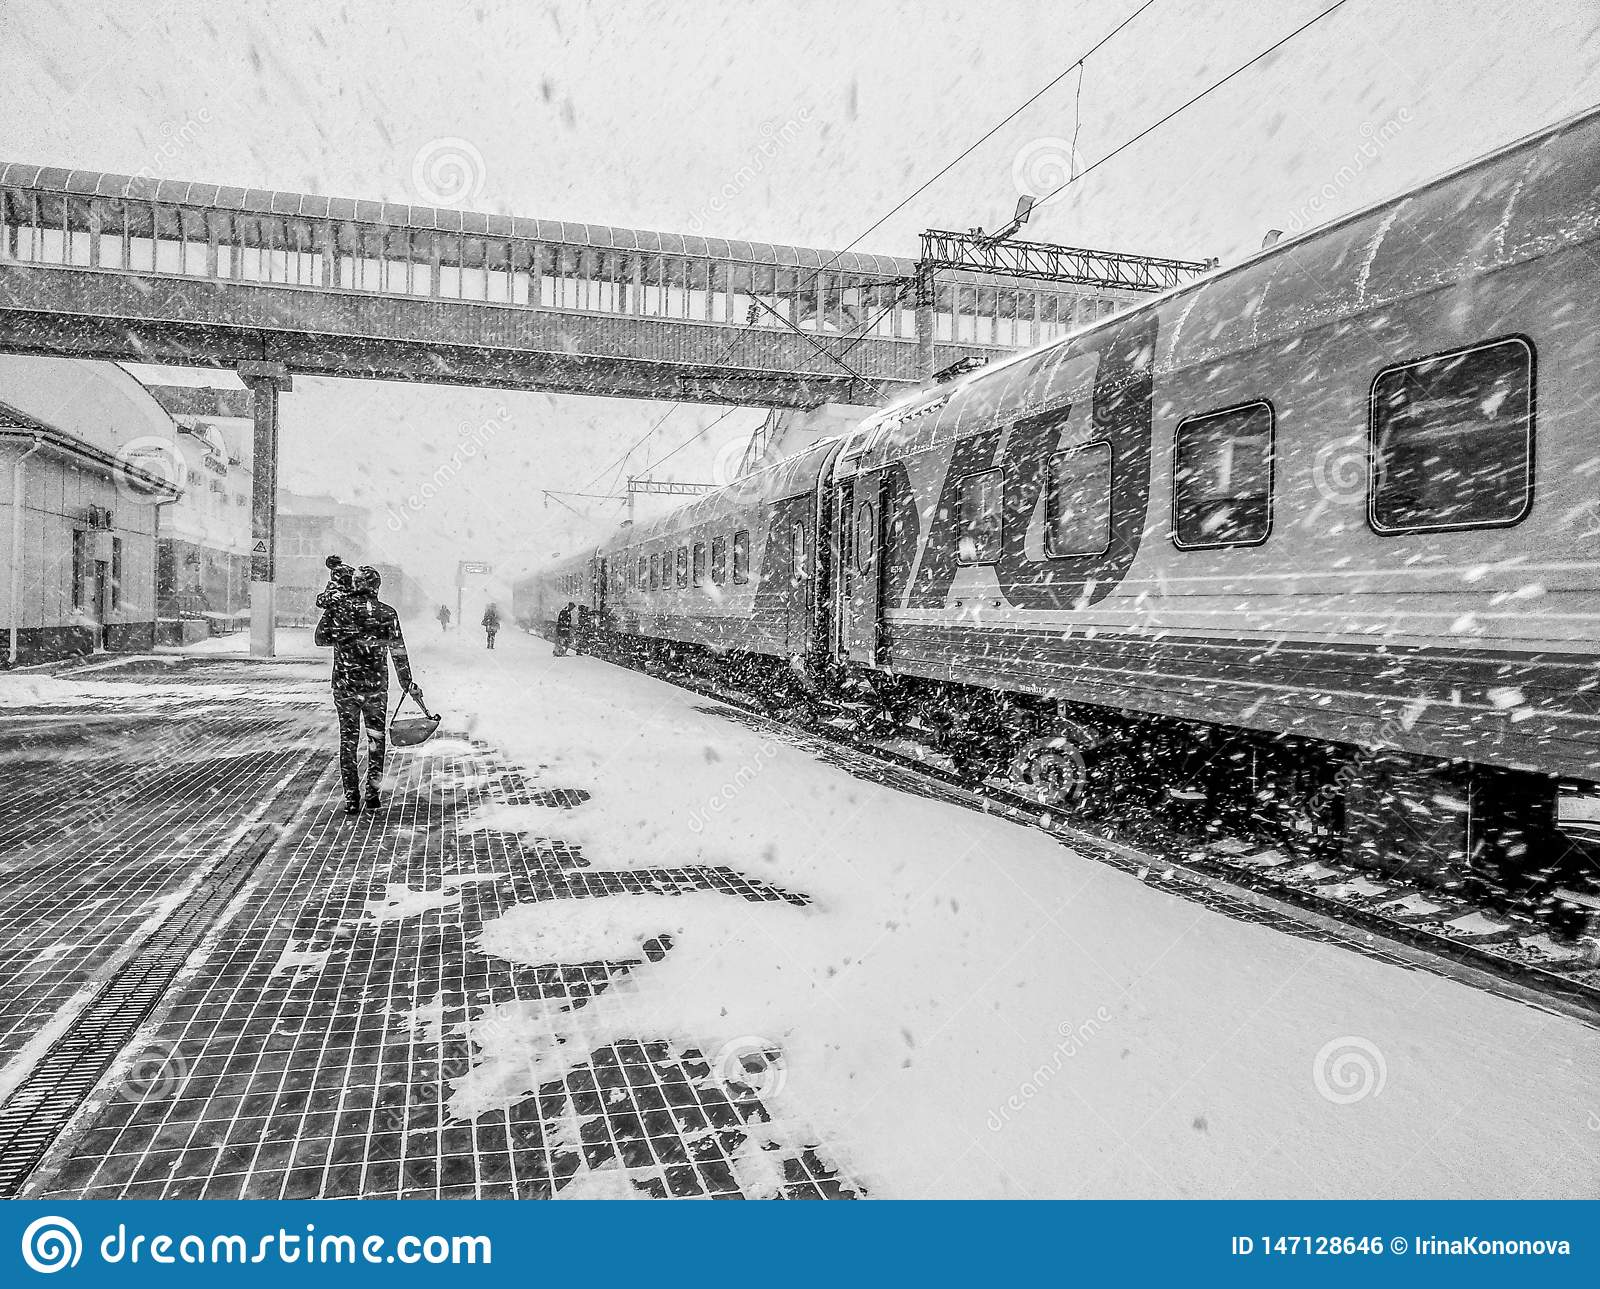 The Moscow-Vladivostok train is at the station. A man with a child is landing